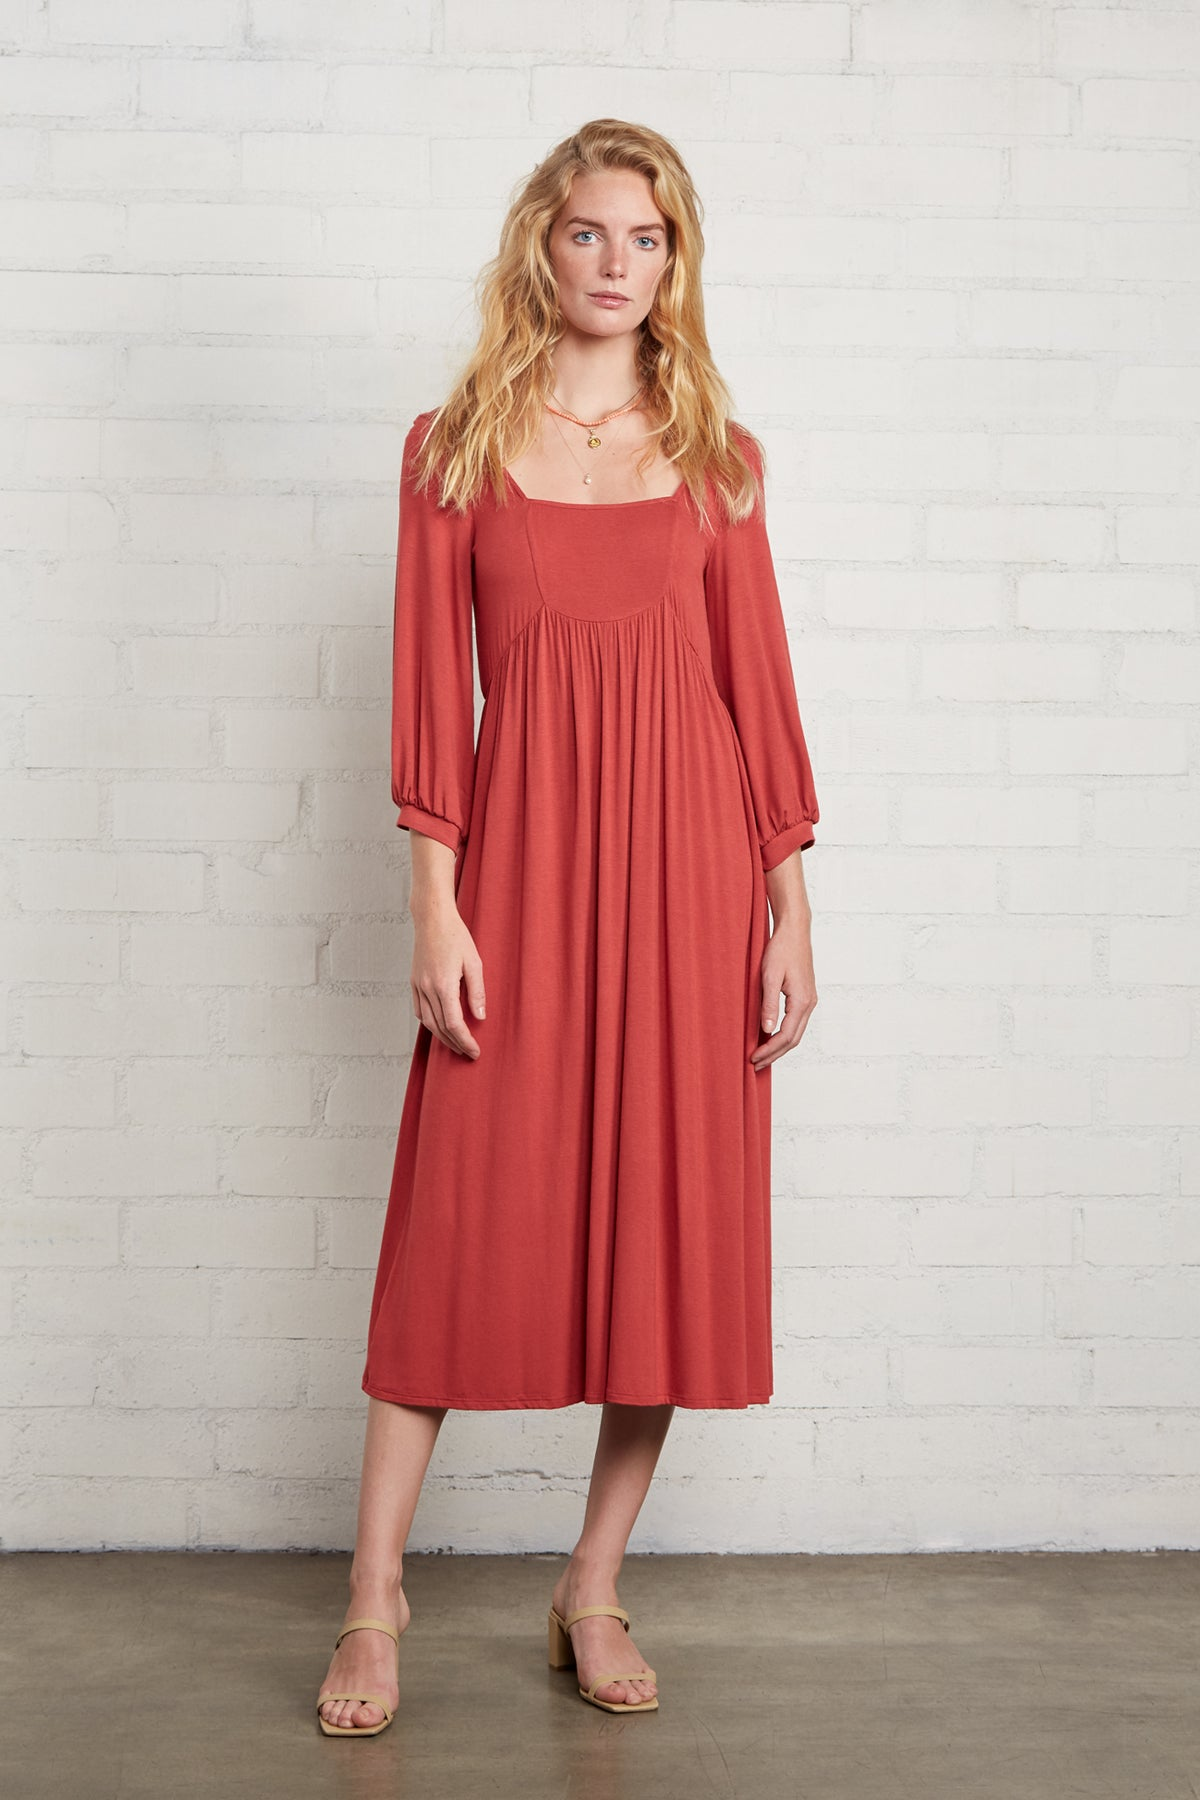 Raphaela Dress - Mineral